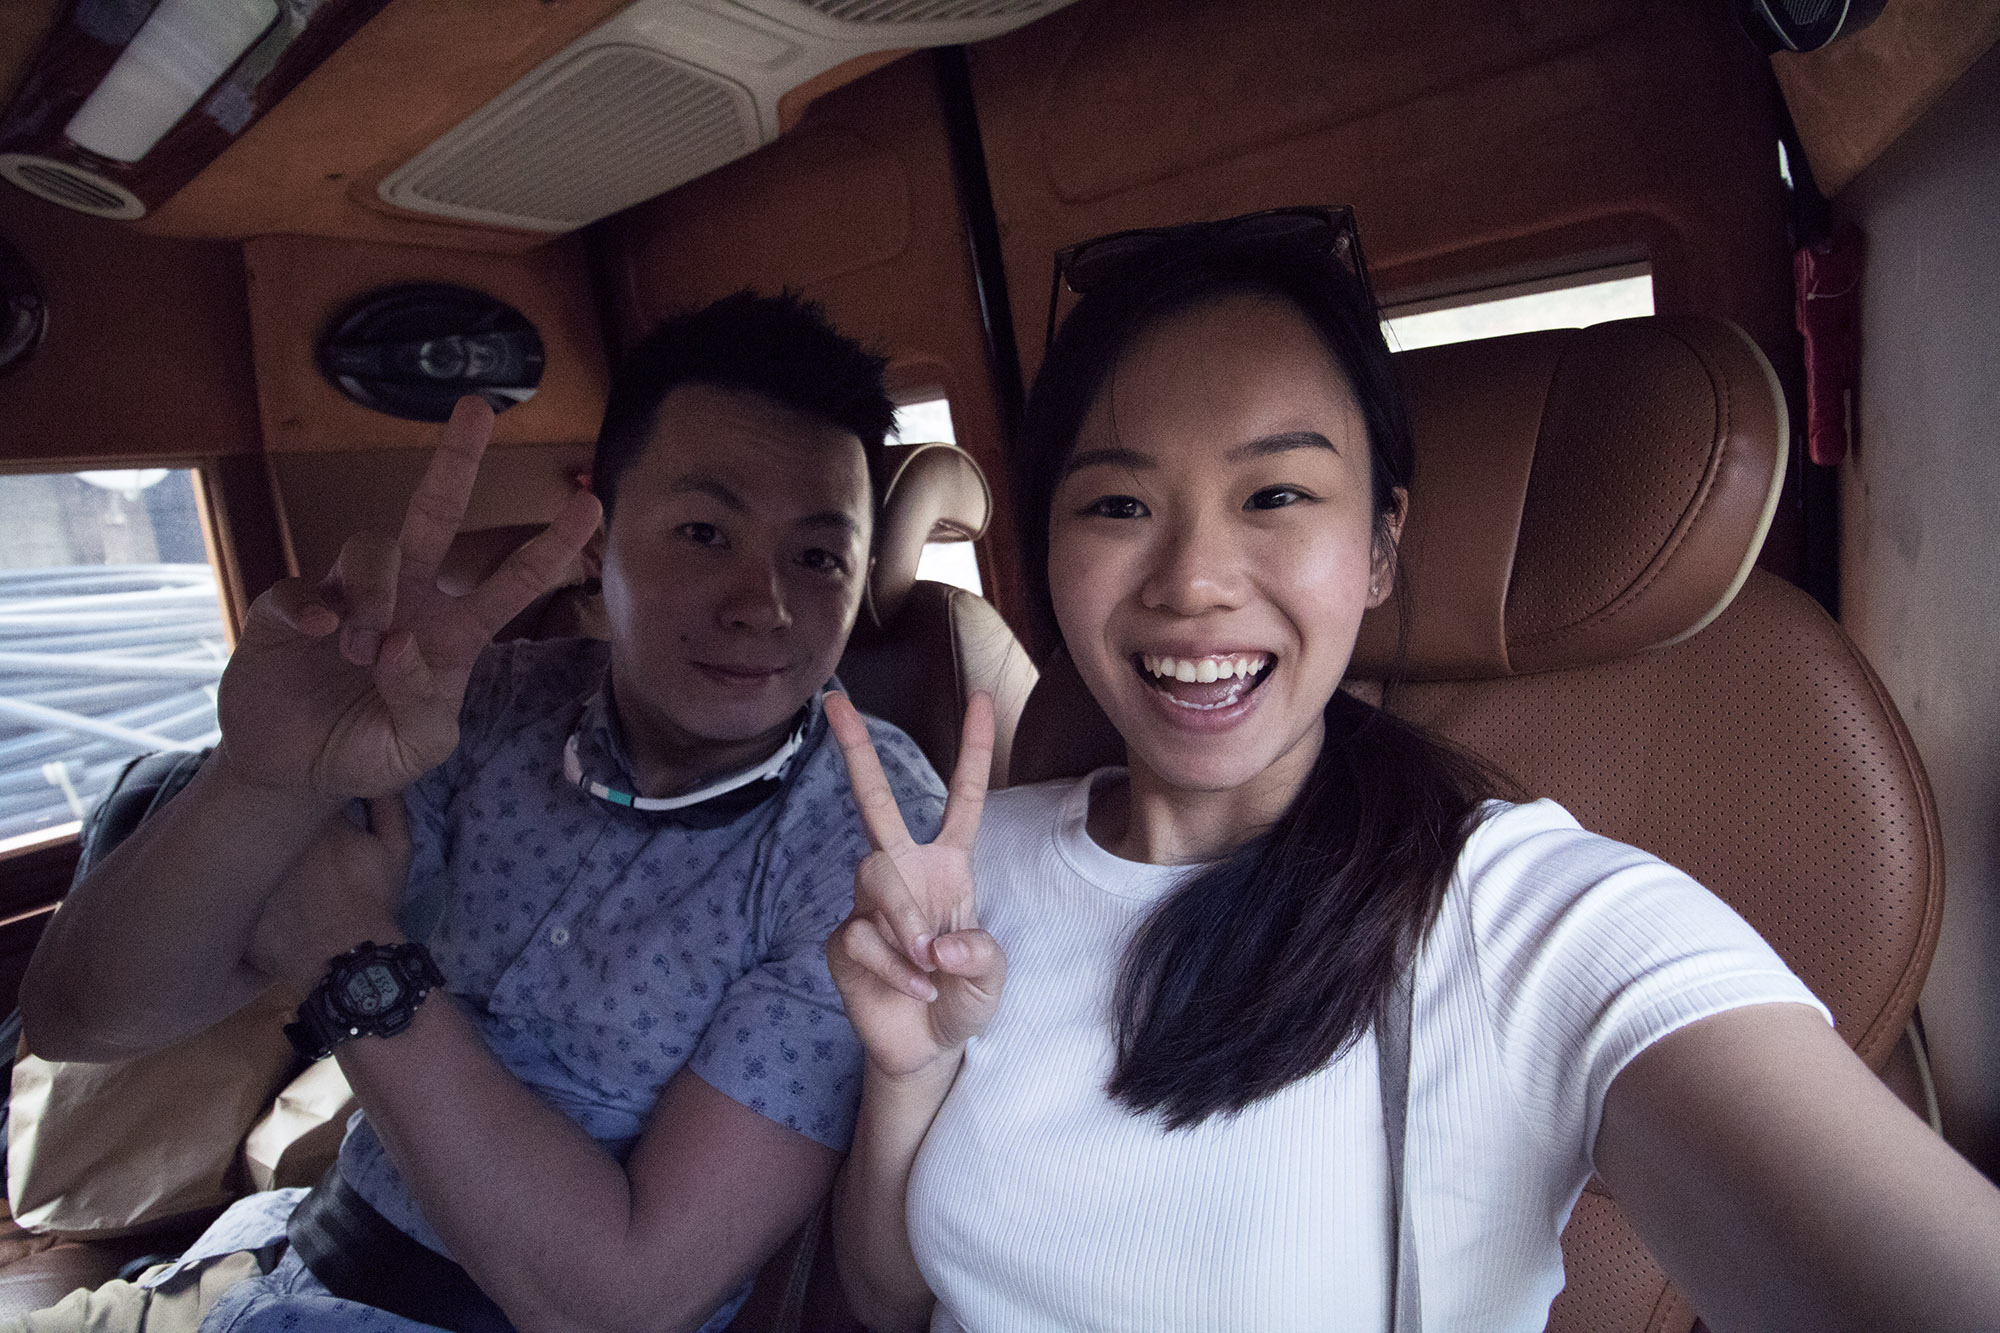 Here's a picture of us in the very comfortable ride!! Ps: I made him do that peace sign with me, haha.